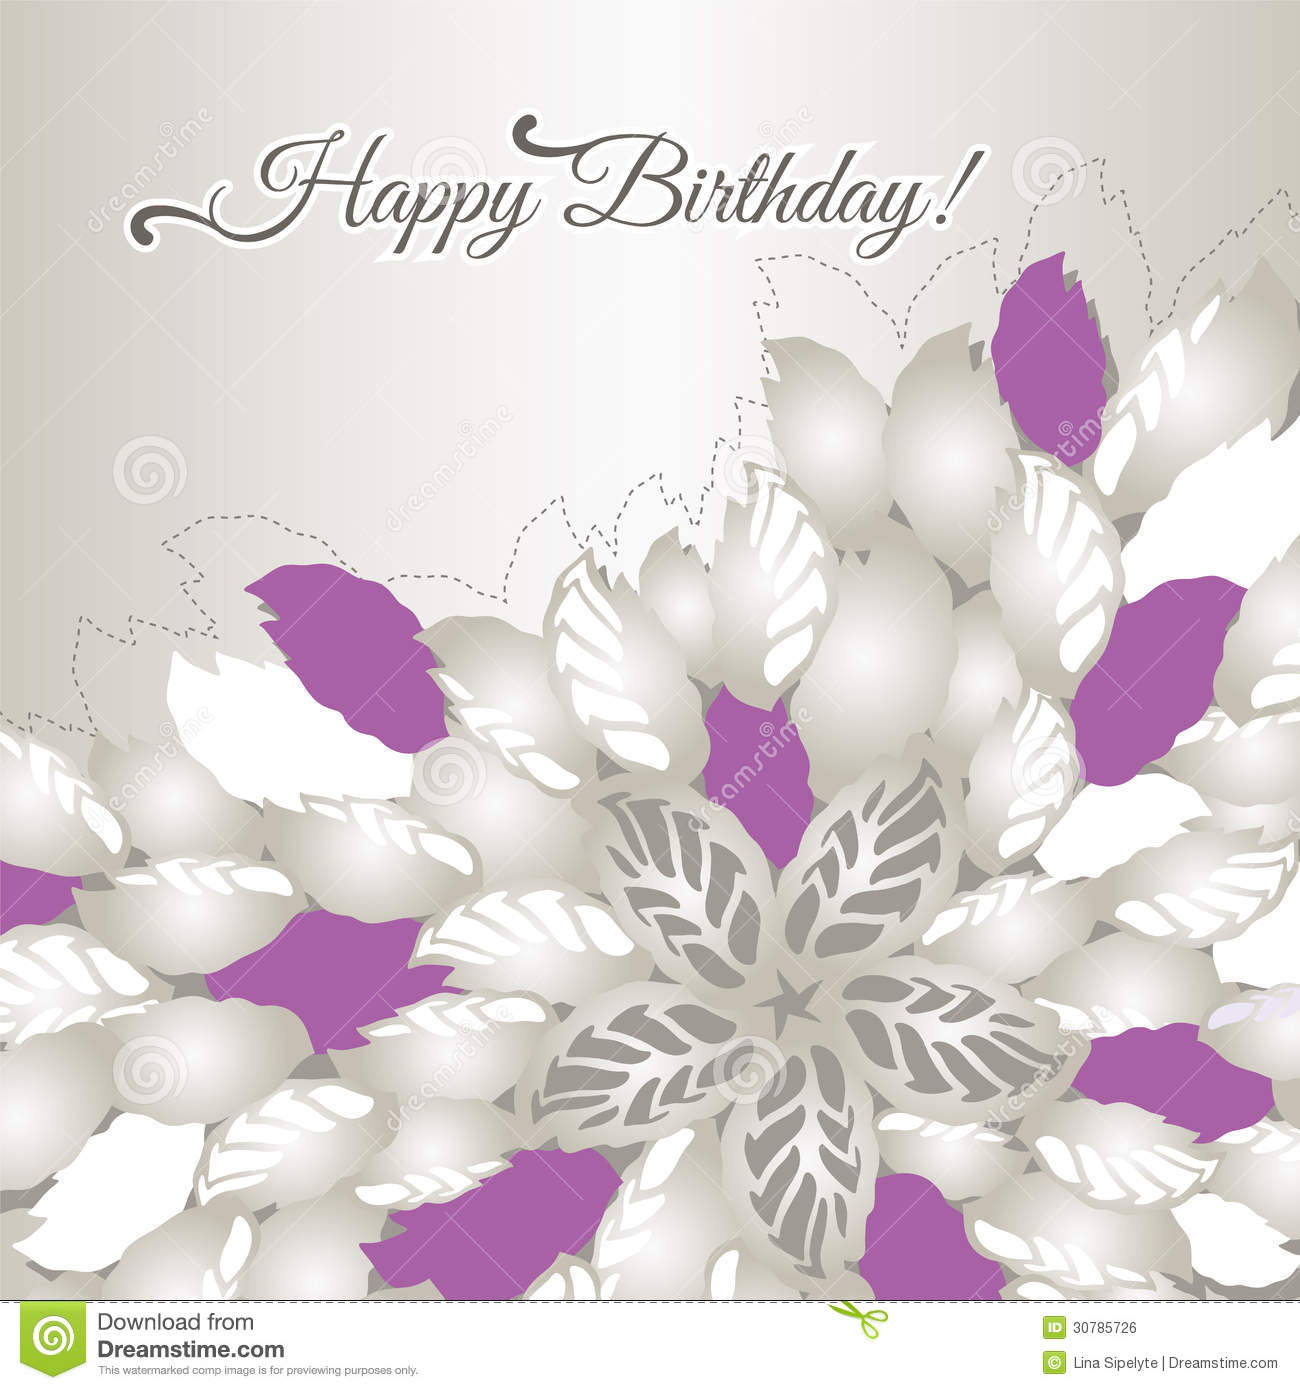 Happy birthday card with pink flowers and leaves royalty free birthday card flowers happy dhlflorist Gallery